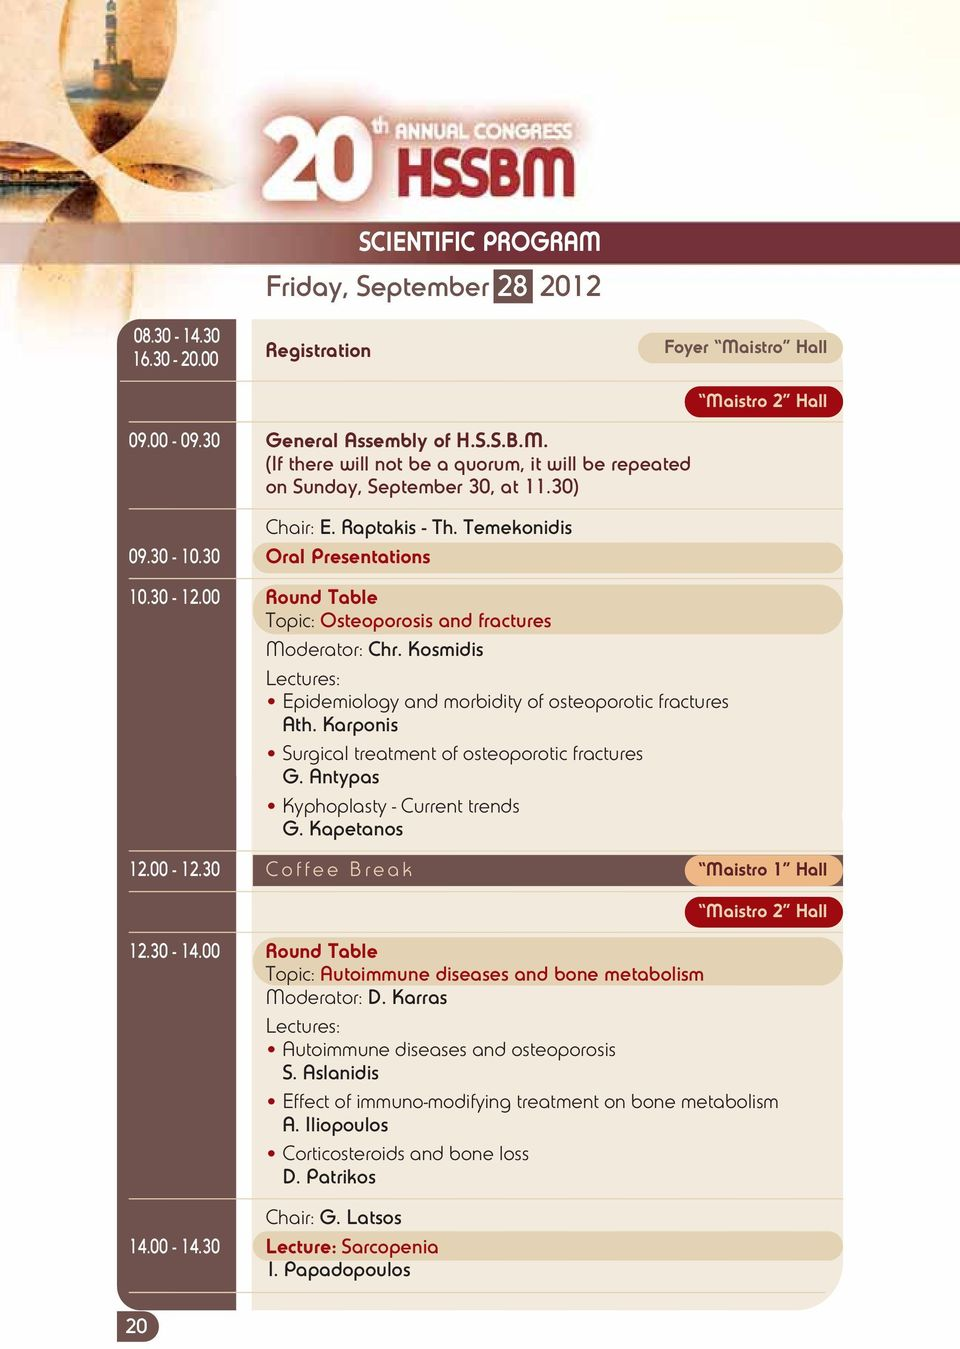 Kosmidis Lectures: Epidemiology and morbidity of osteoporotic fractures Ath. Karponis Surgical treatment of osteoporotic fractures G. Antypas Kyphoplasty - Current trends G. Kapetanos 12.00-12.